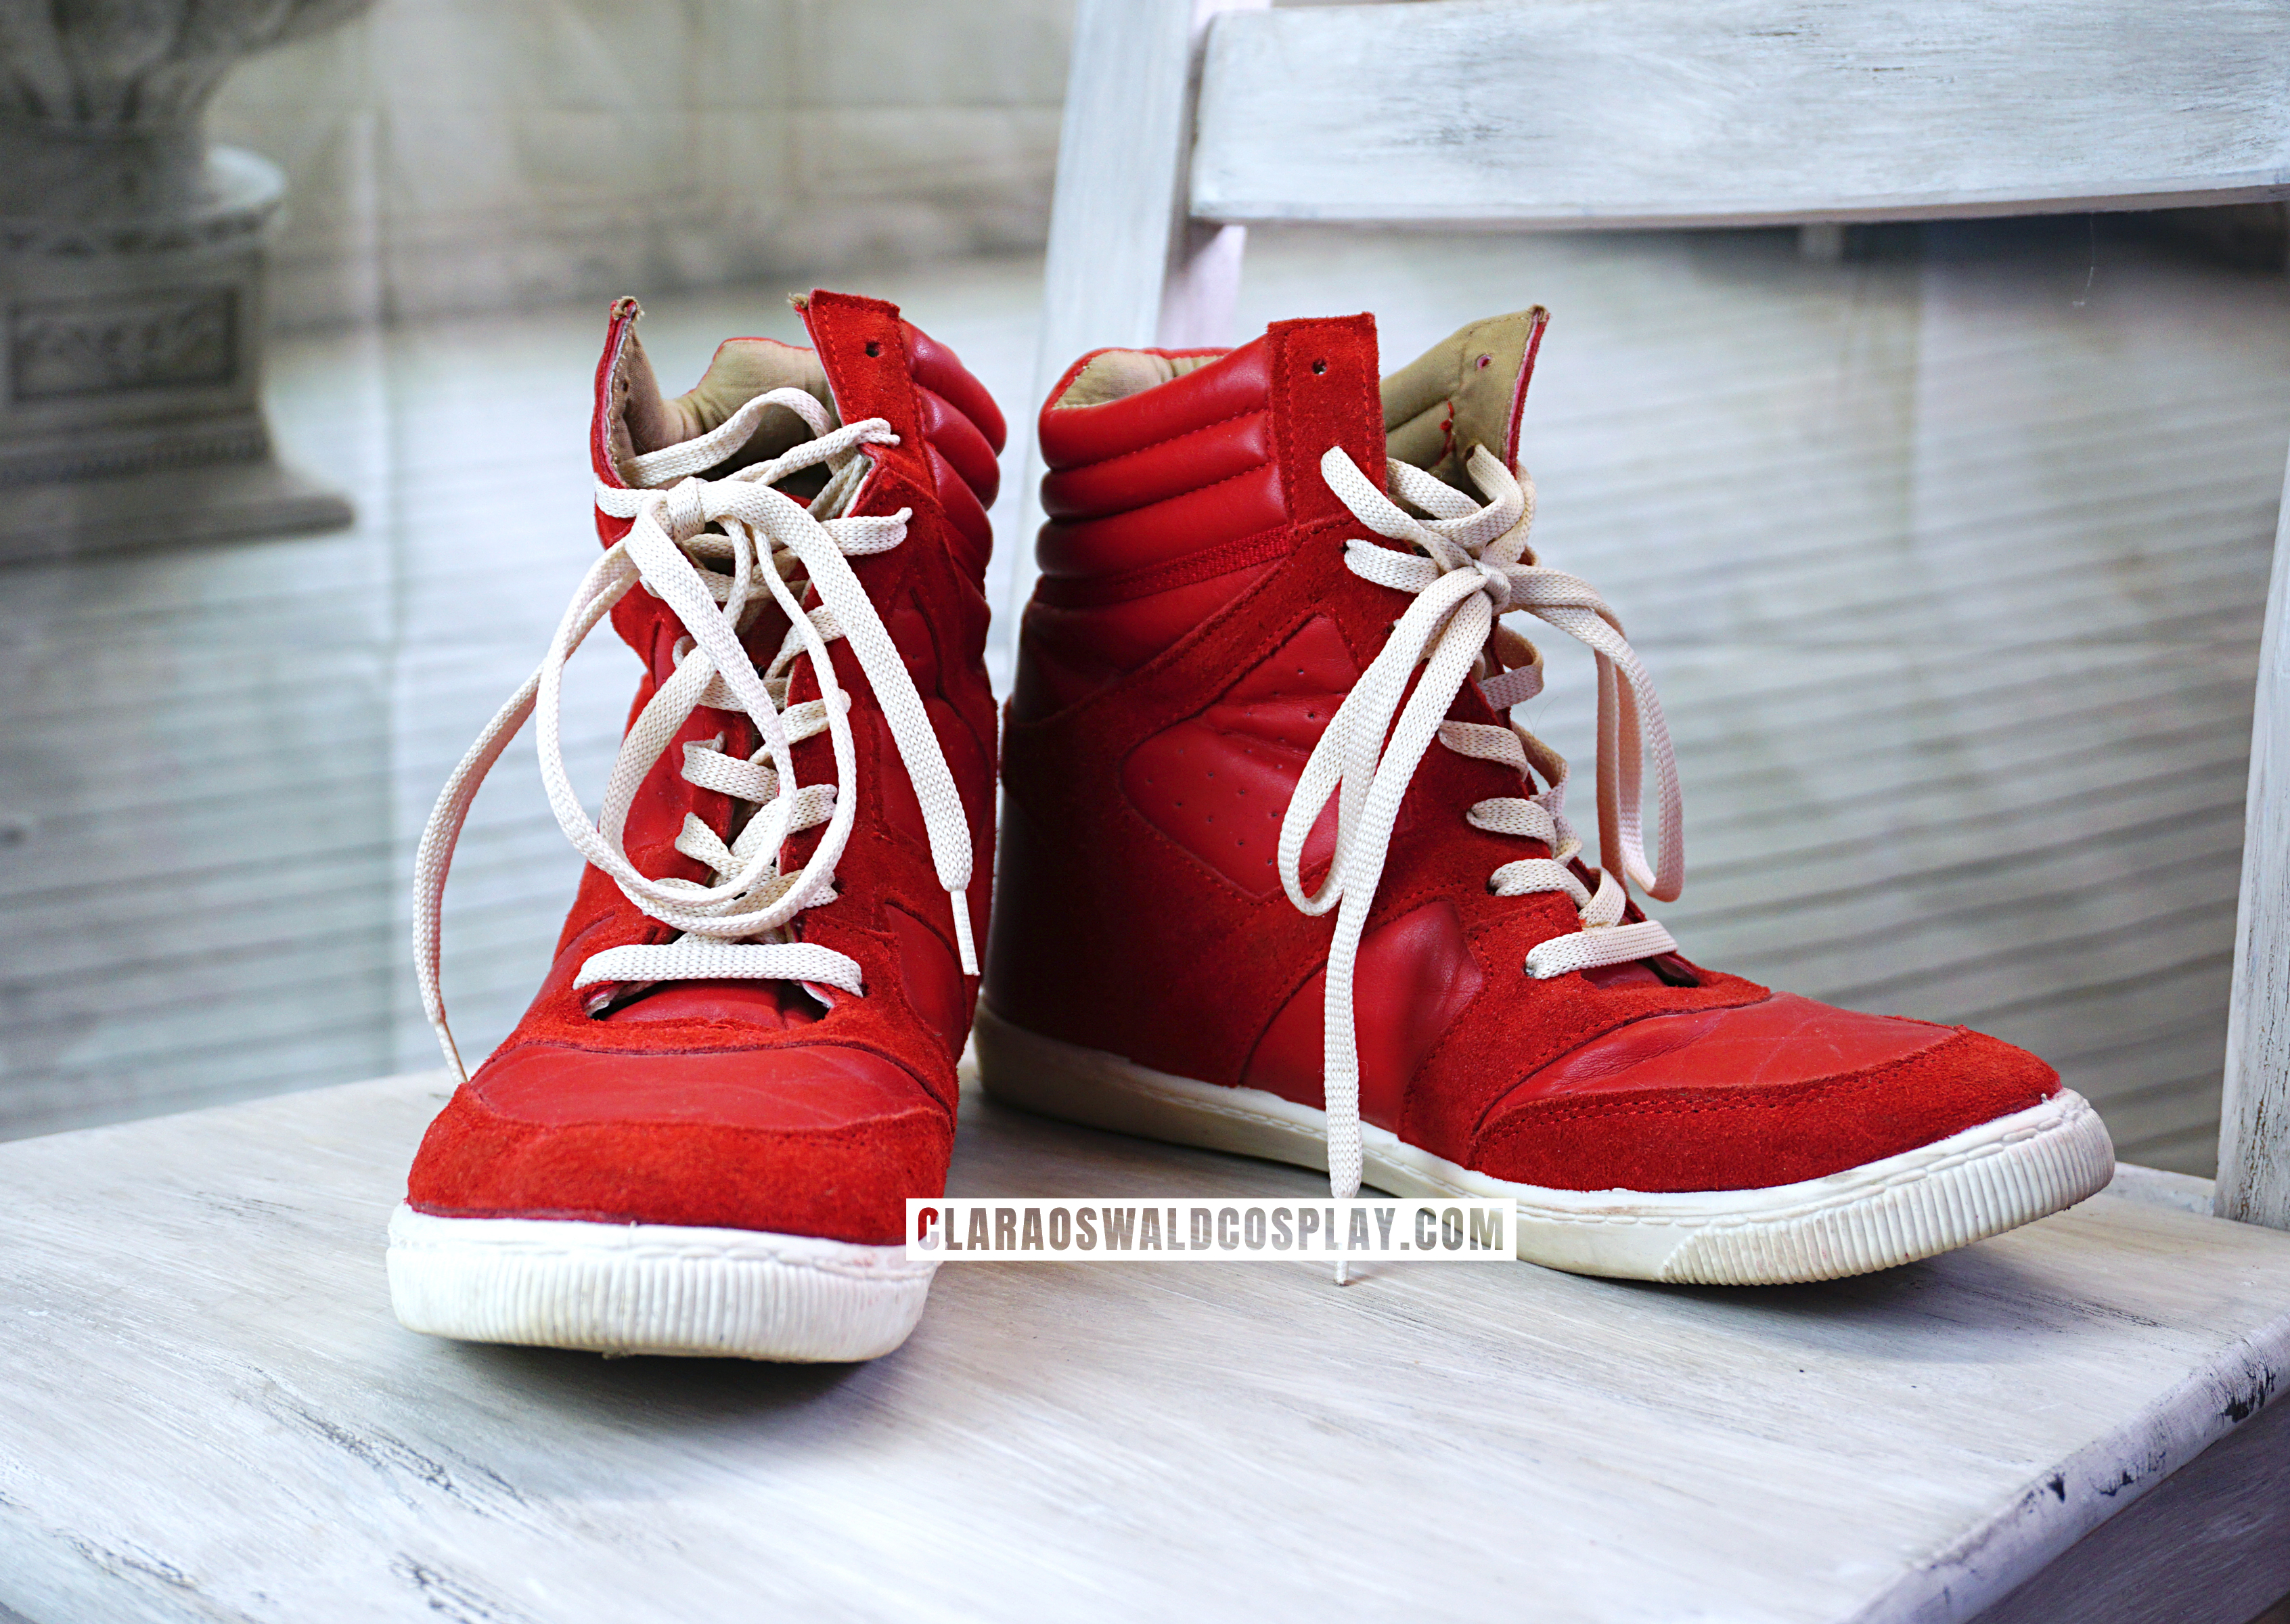 Oswin Oswald's red River Island Wedge Sneakers as worn in Asylum of the Daleks